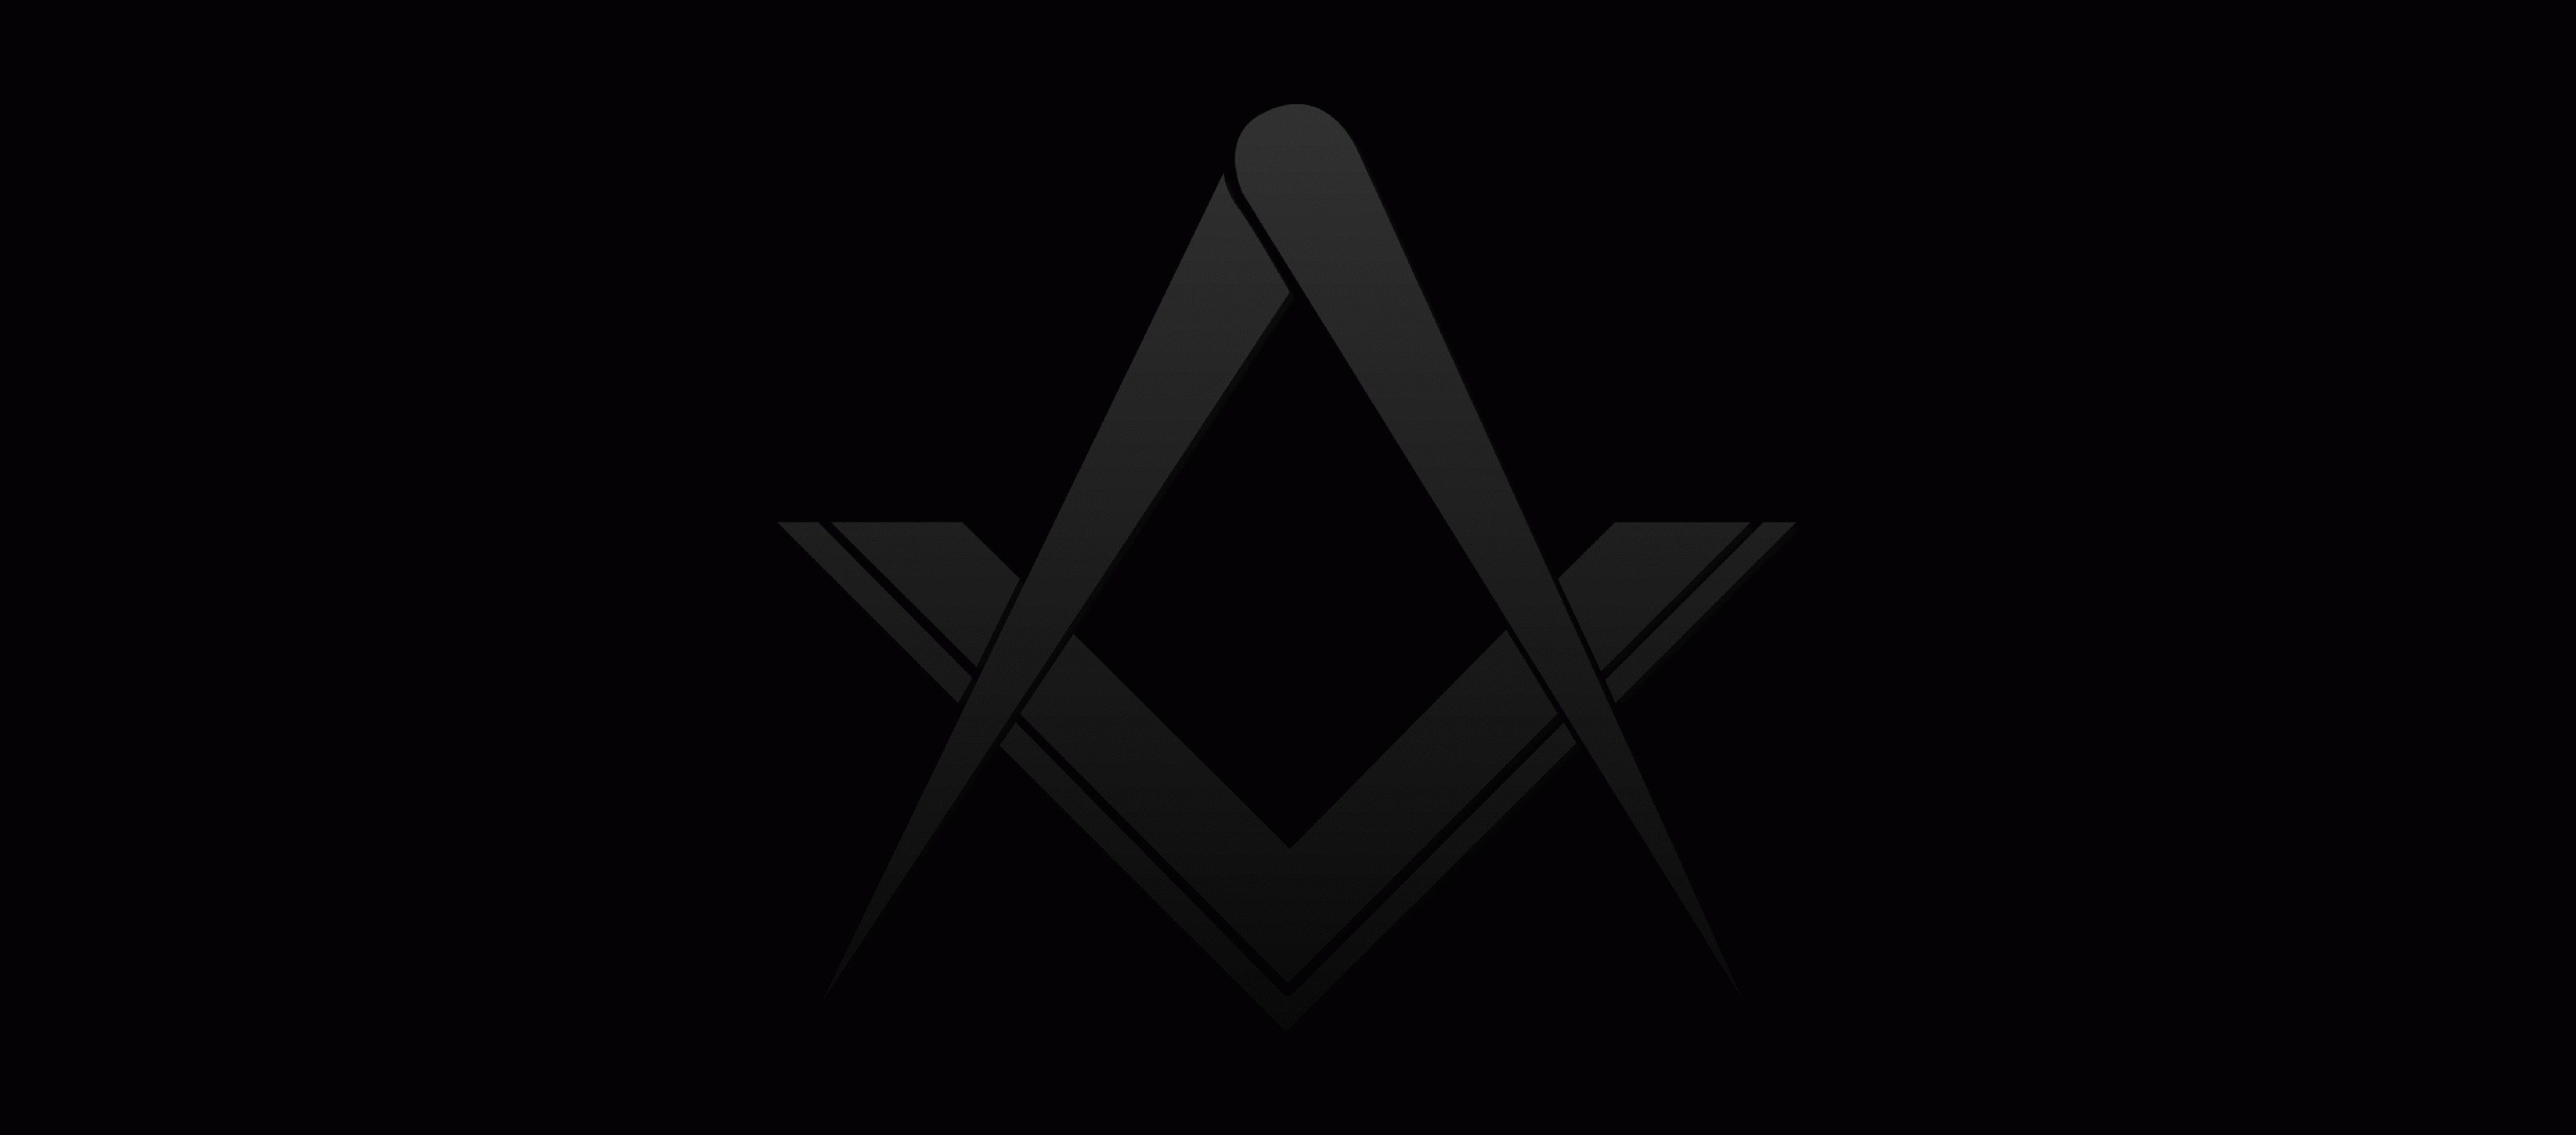 3760x1656 When will your Masonic journey start?